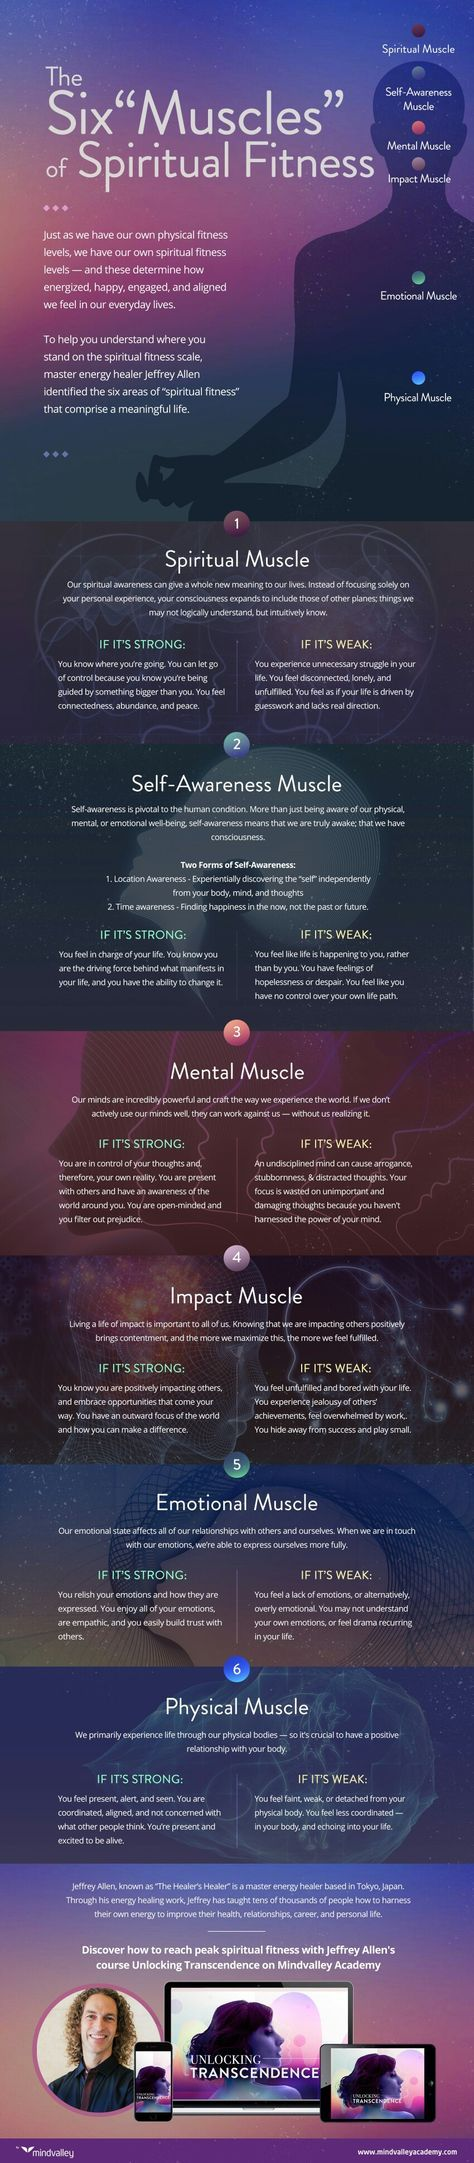 The 6 Muscles of Spiritual Fitness